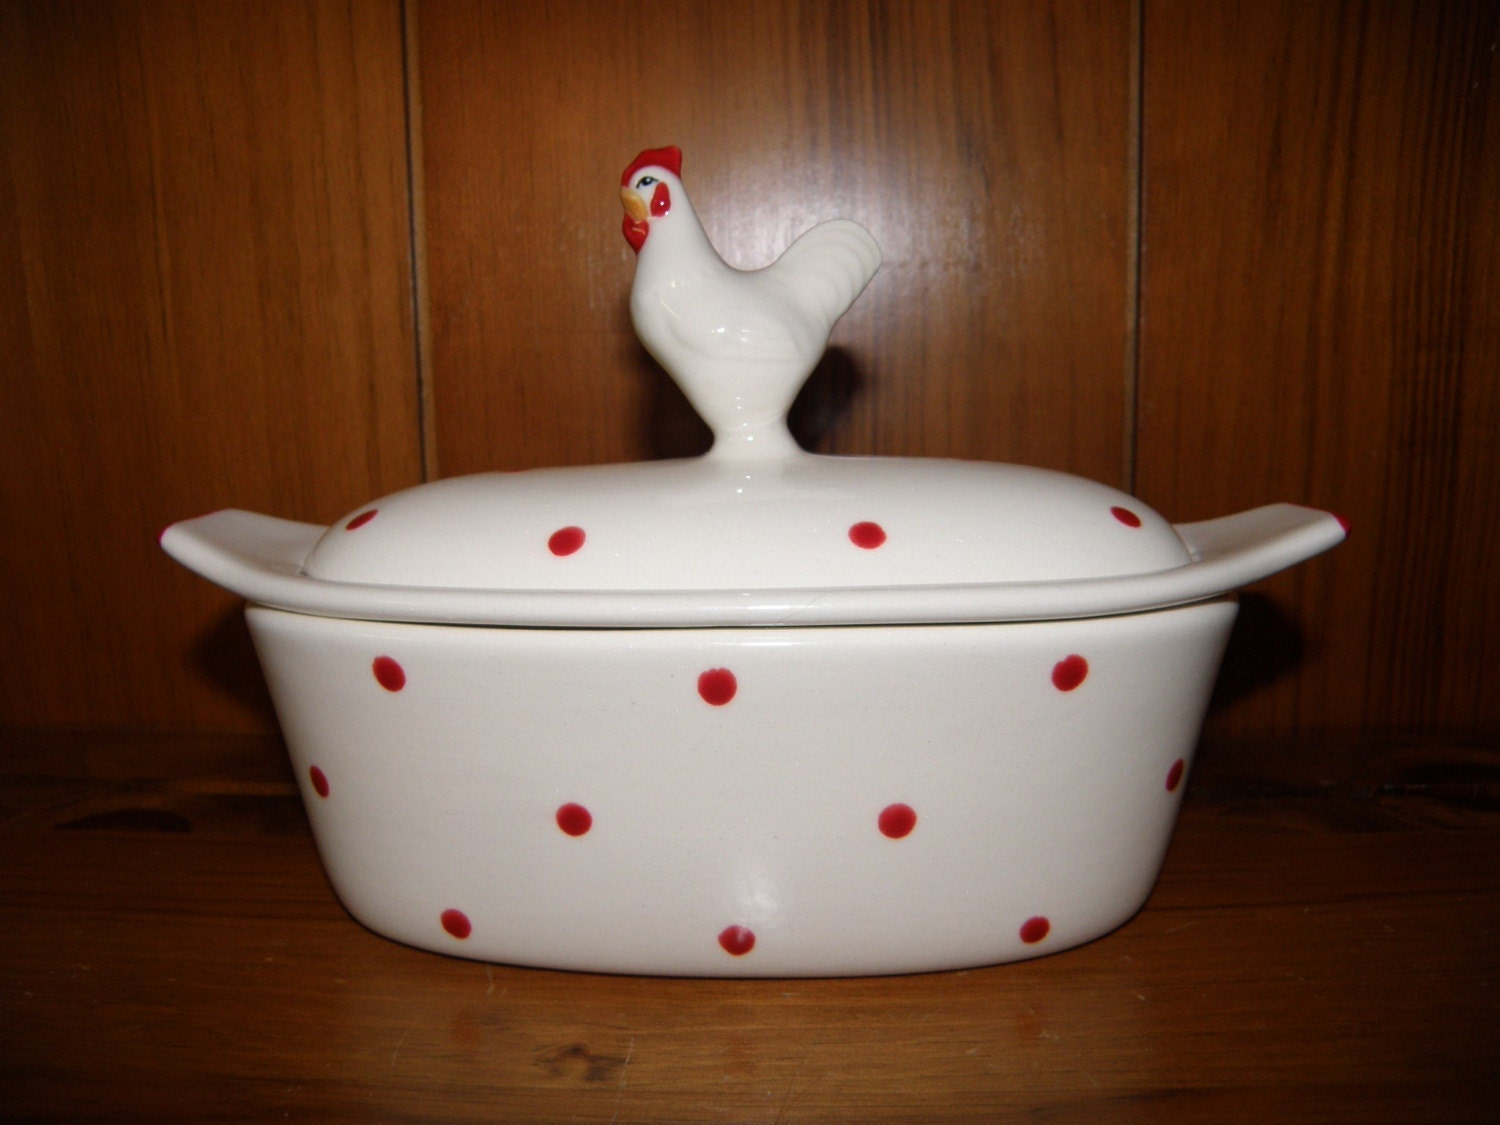 Retro Rooster Butter Boat Keeper 3 Piece Red White Polka